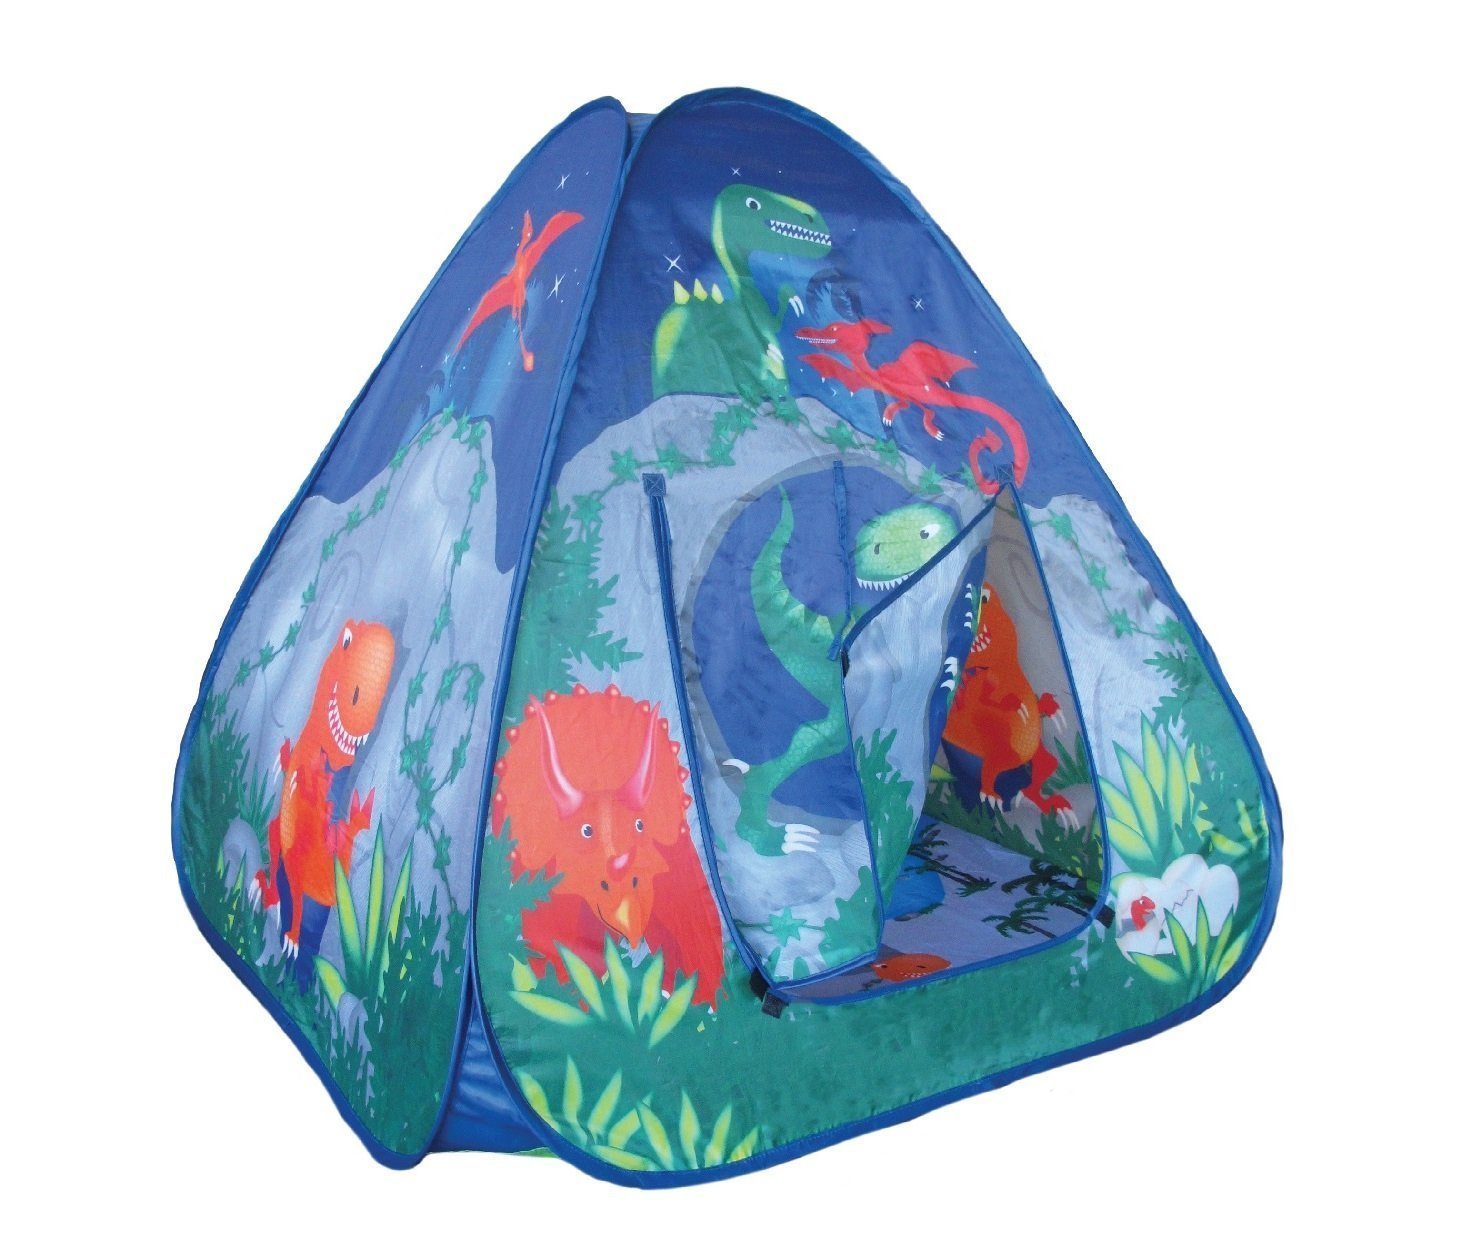 Amazon.com Childrens Pop Up Play Tent Dinosaur Cave With Unique Printed Playmat Toys u0026 Games  sc 1 st  Amazon.com & Amazon.com: Childrens Pop Up Play Tent Dinosaur Cave With Unique ...